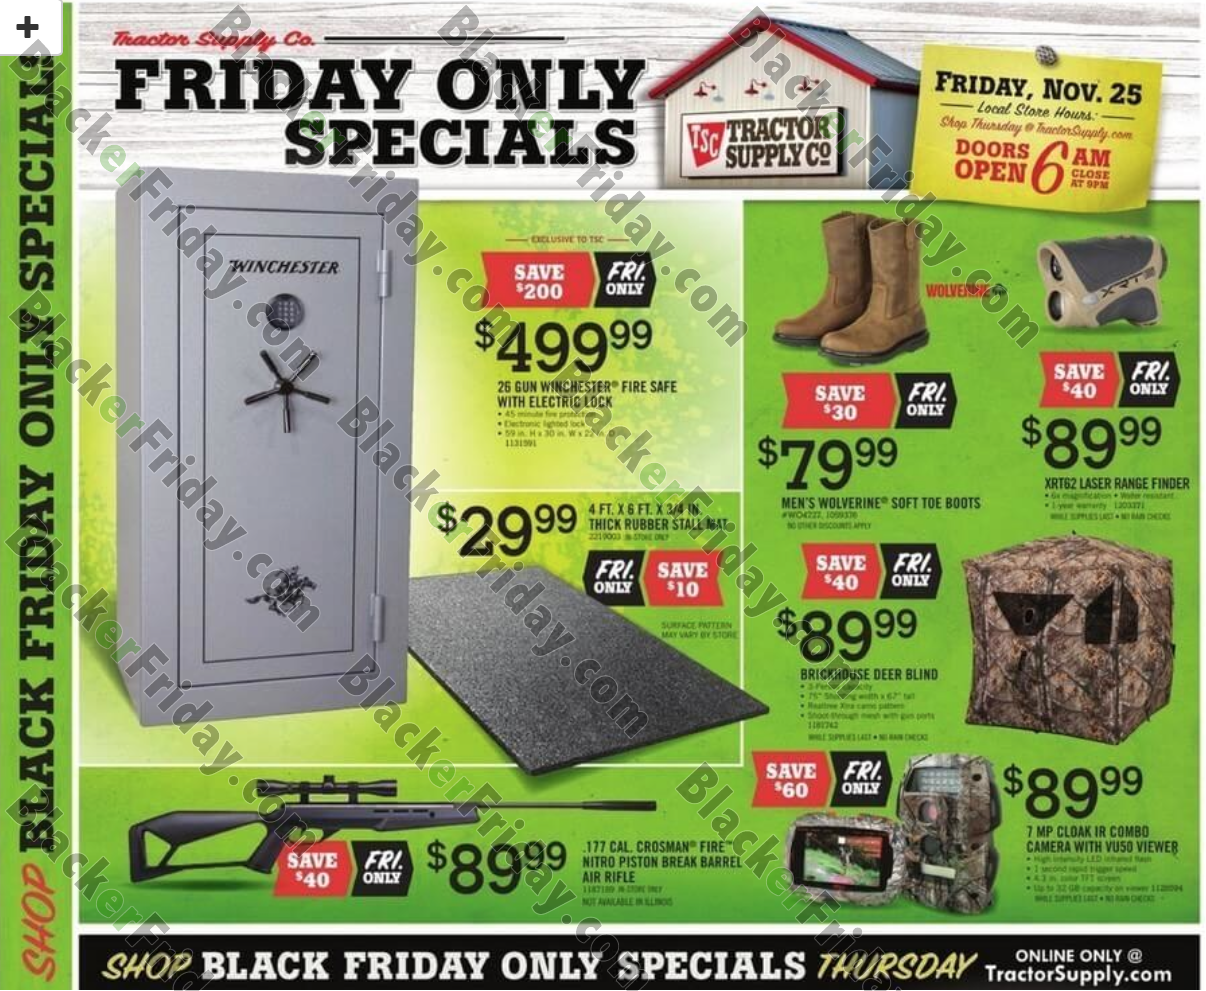 Complete coverage of Tractor Supply Black Friday Ads & Tractor Supply Black Friday deals info.